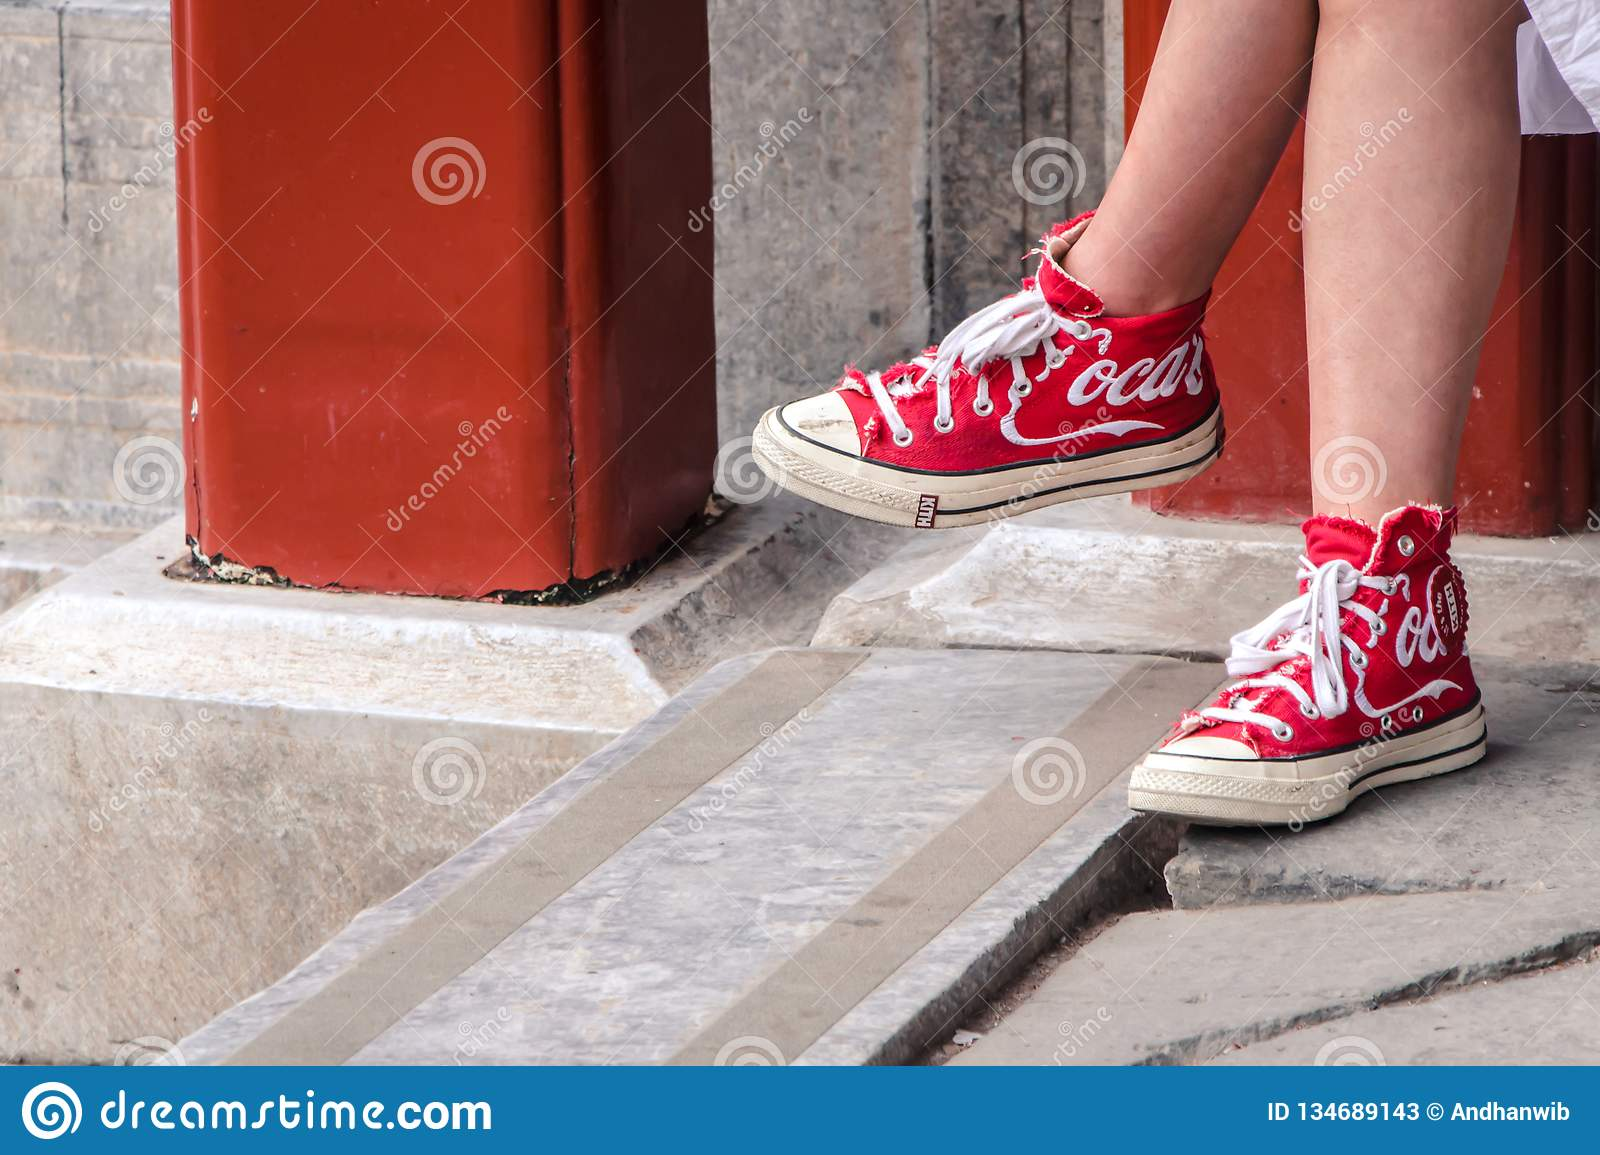 Girl Wearing Red Shoes with Coca Cola Logo on it